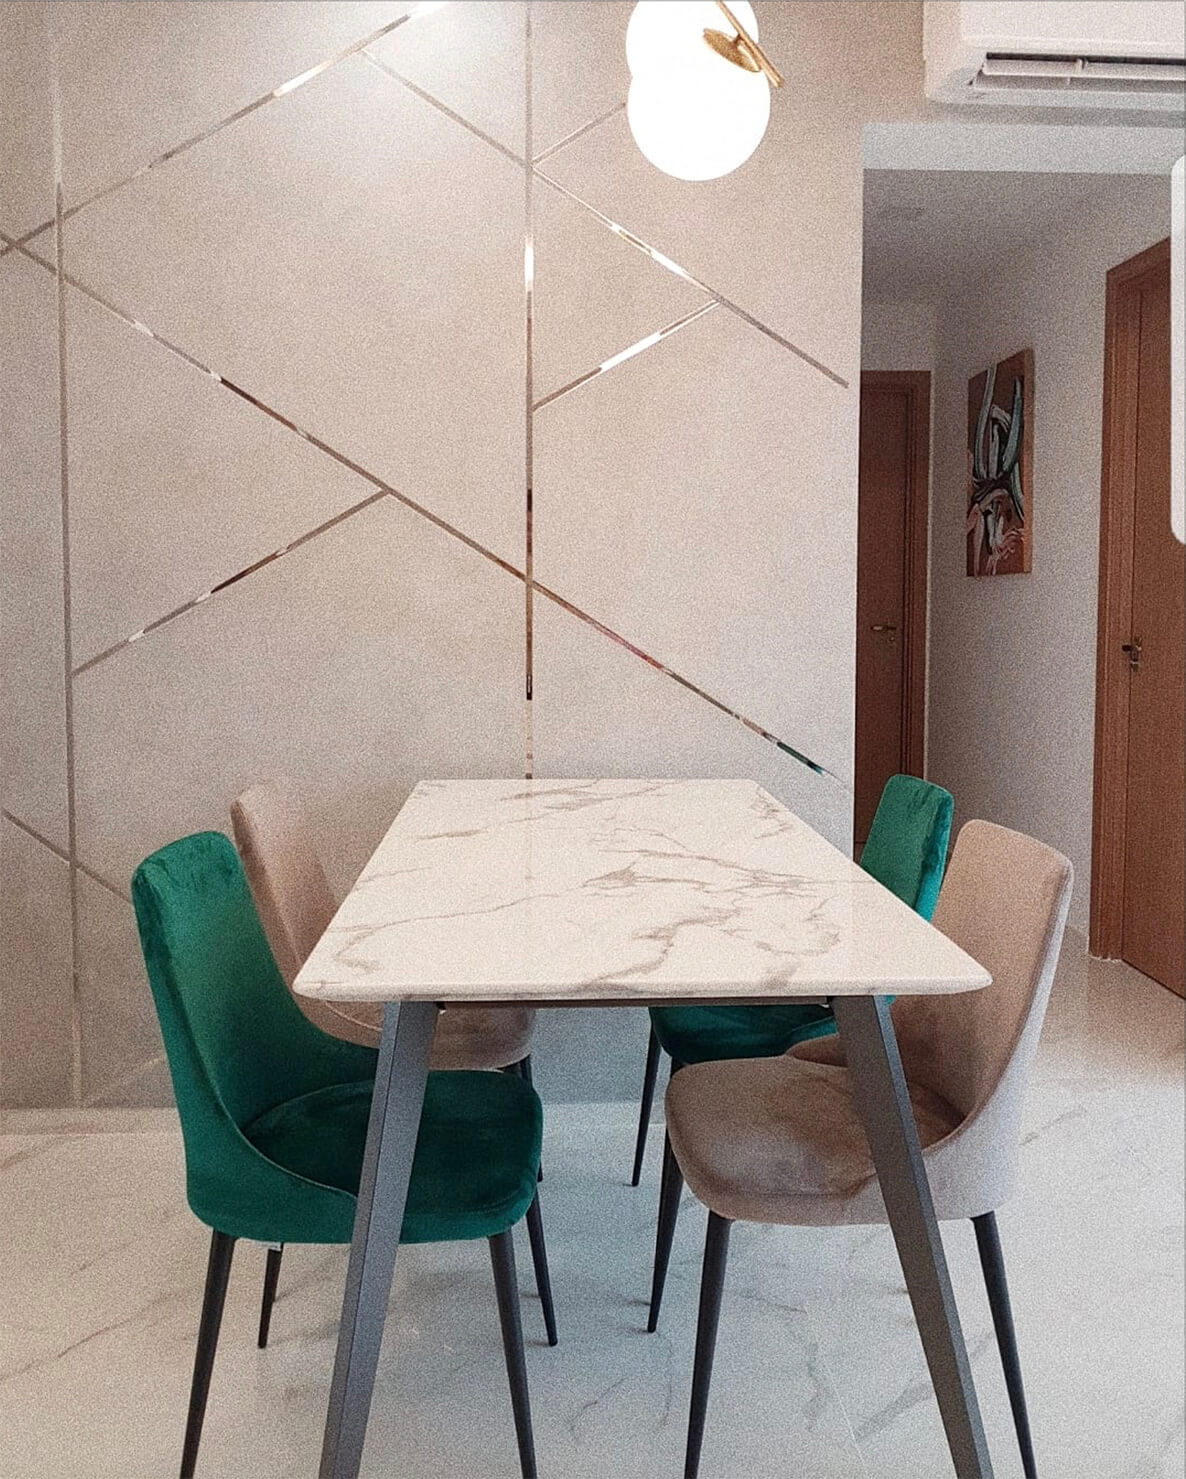 How To Choose The Right Dining Table For Your Home Comfort Furniture Blog